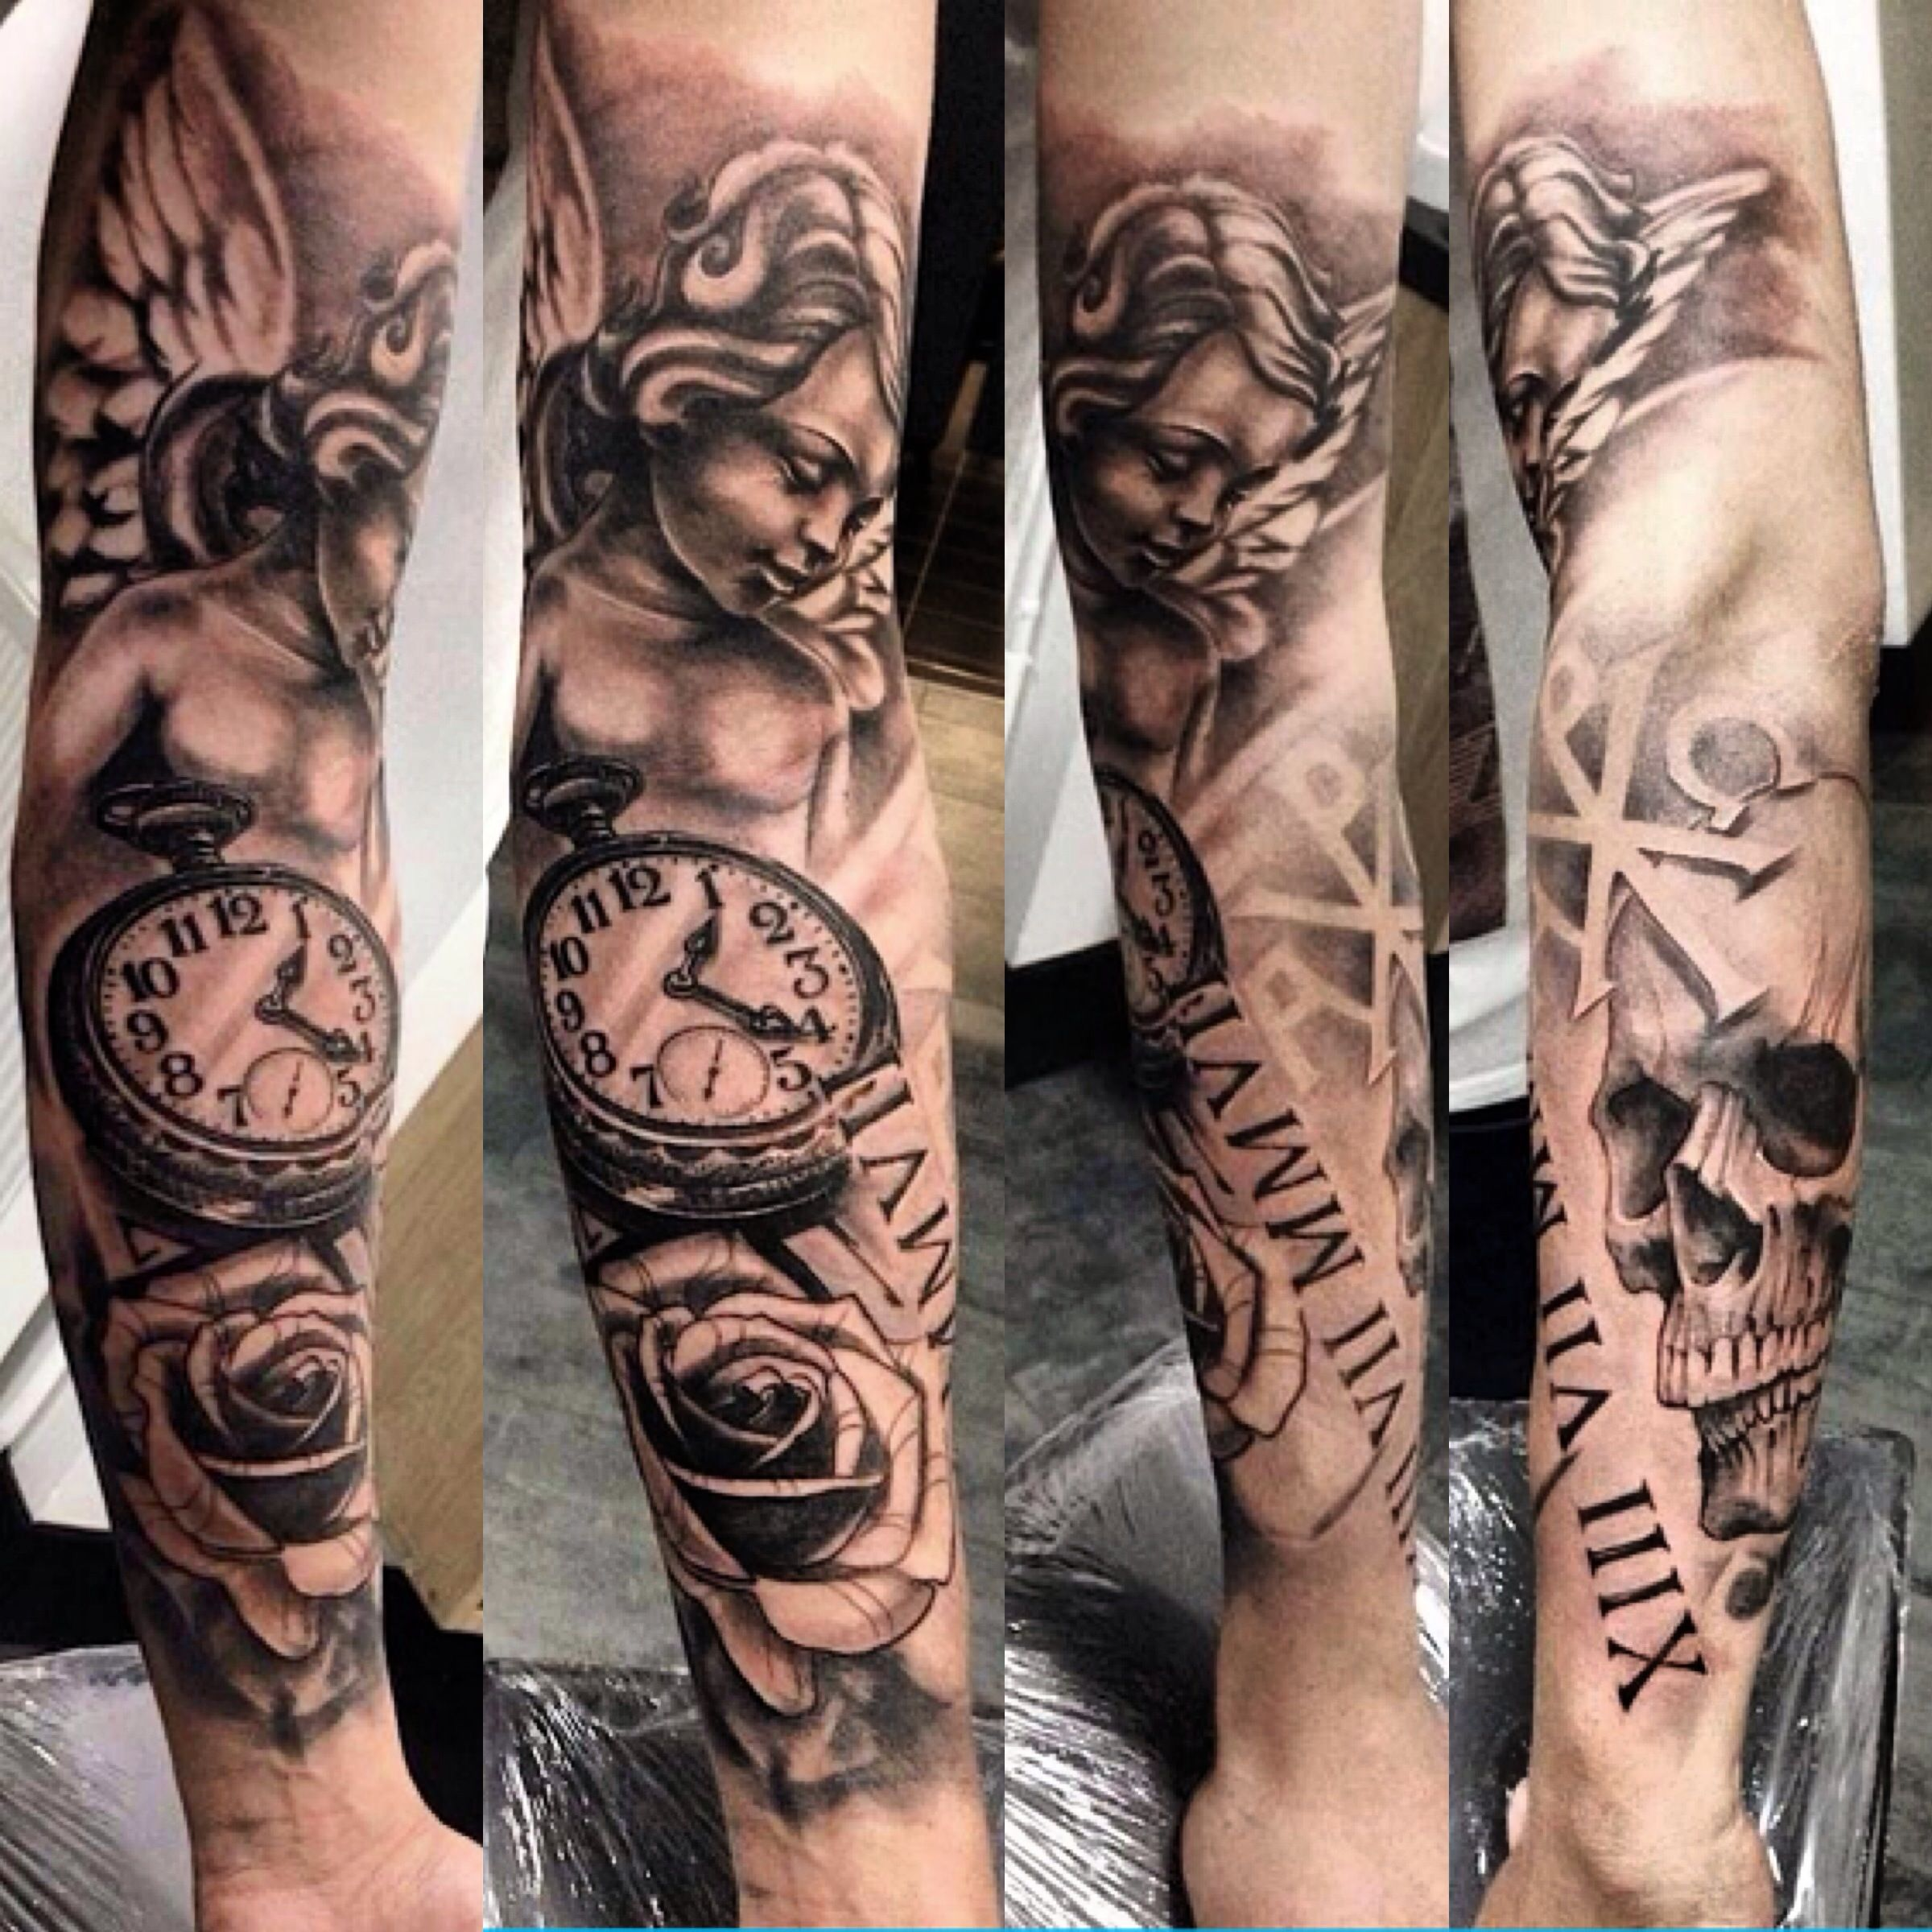 Clock forearm black rose sleeve tattoo -  Angel Clockwork Skull Roses Sleeve Tattoo Tattoos Ink